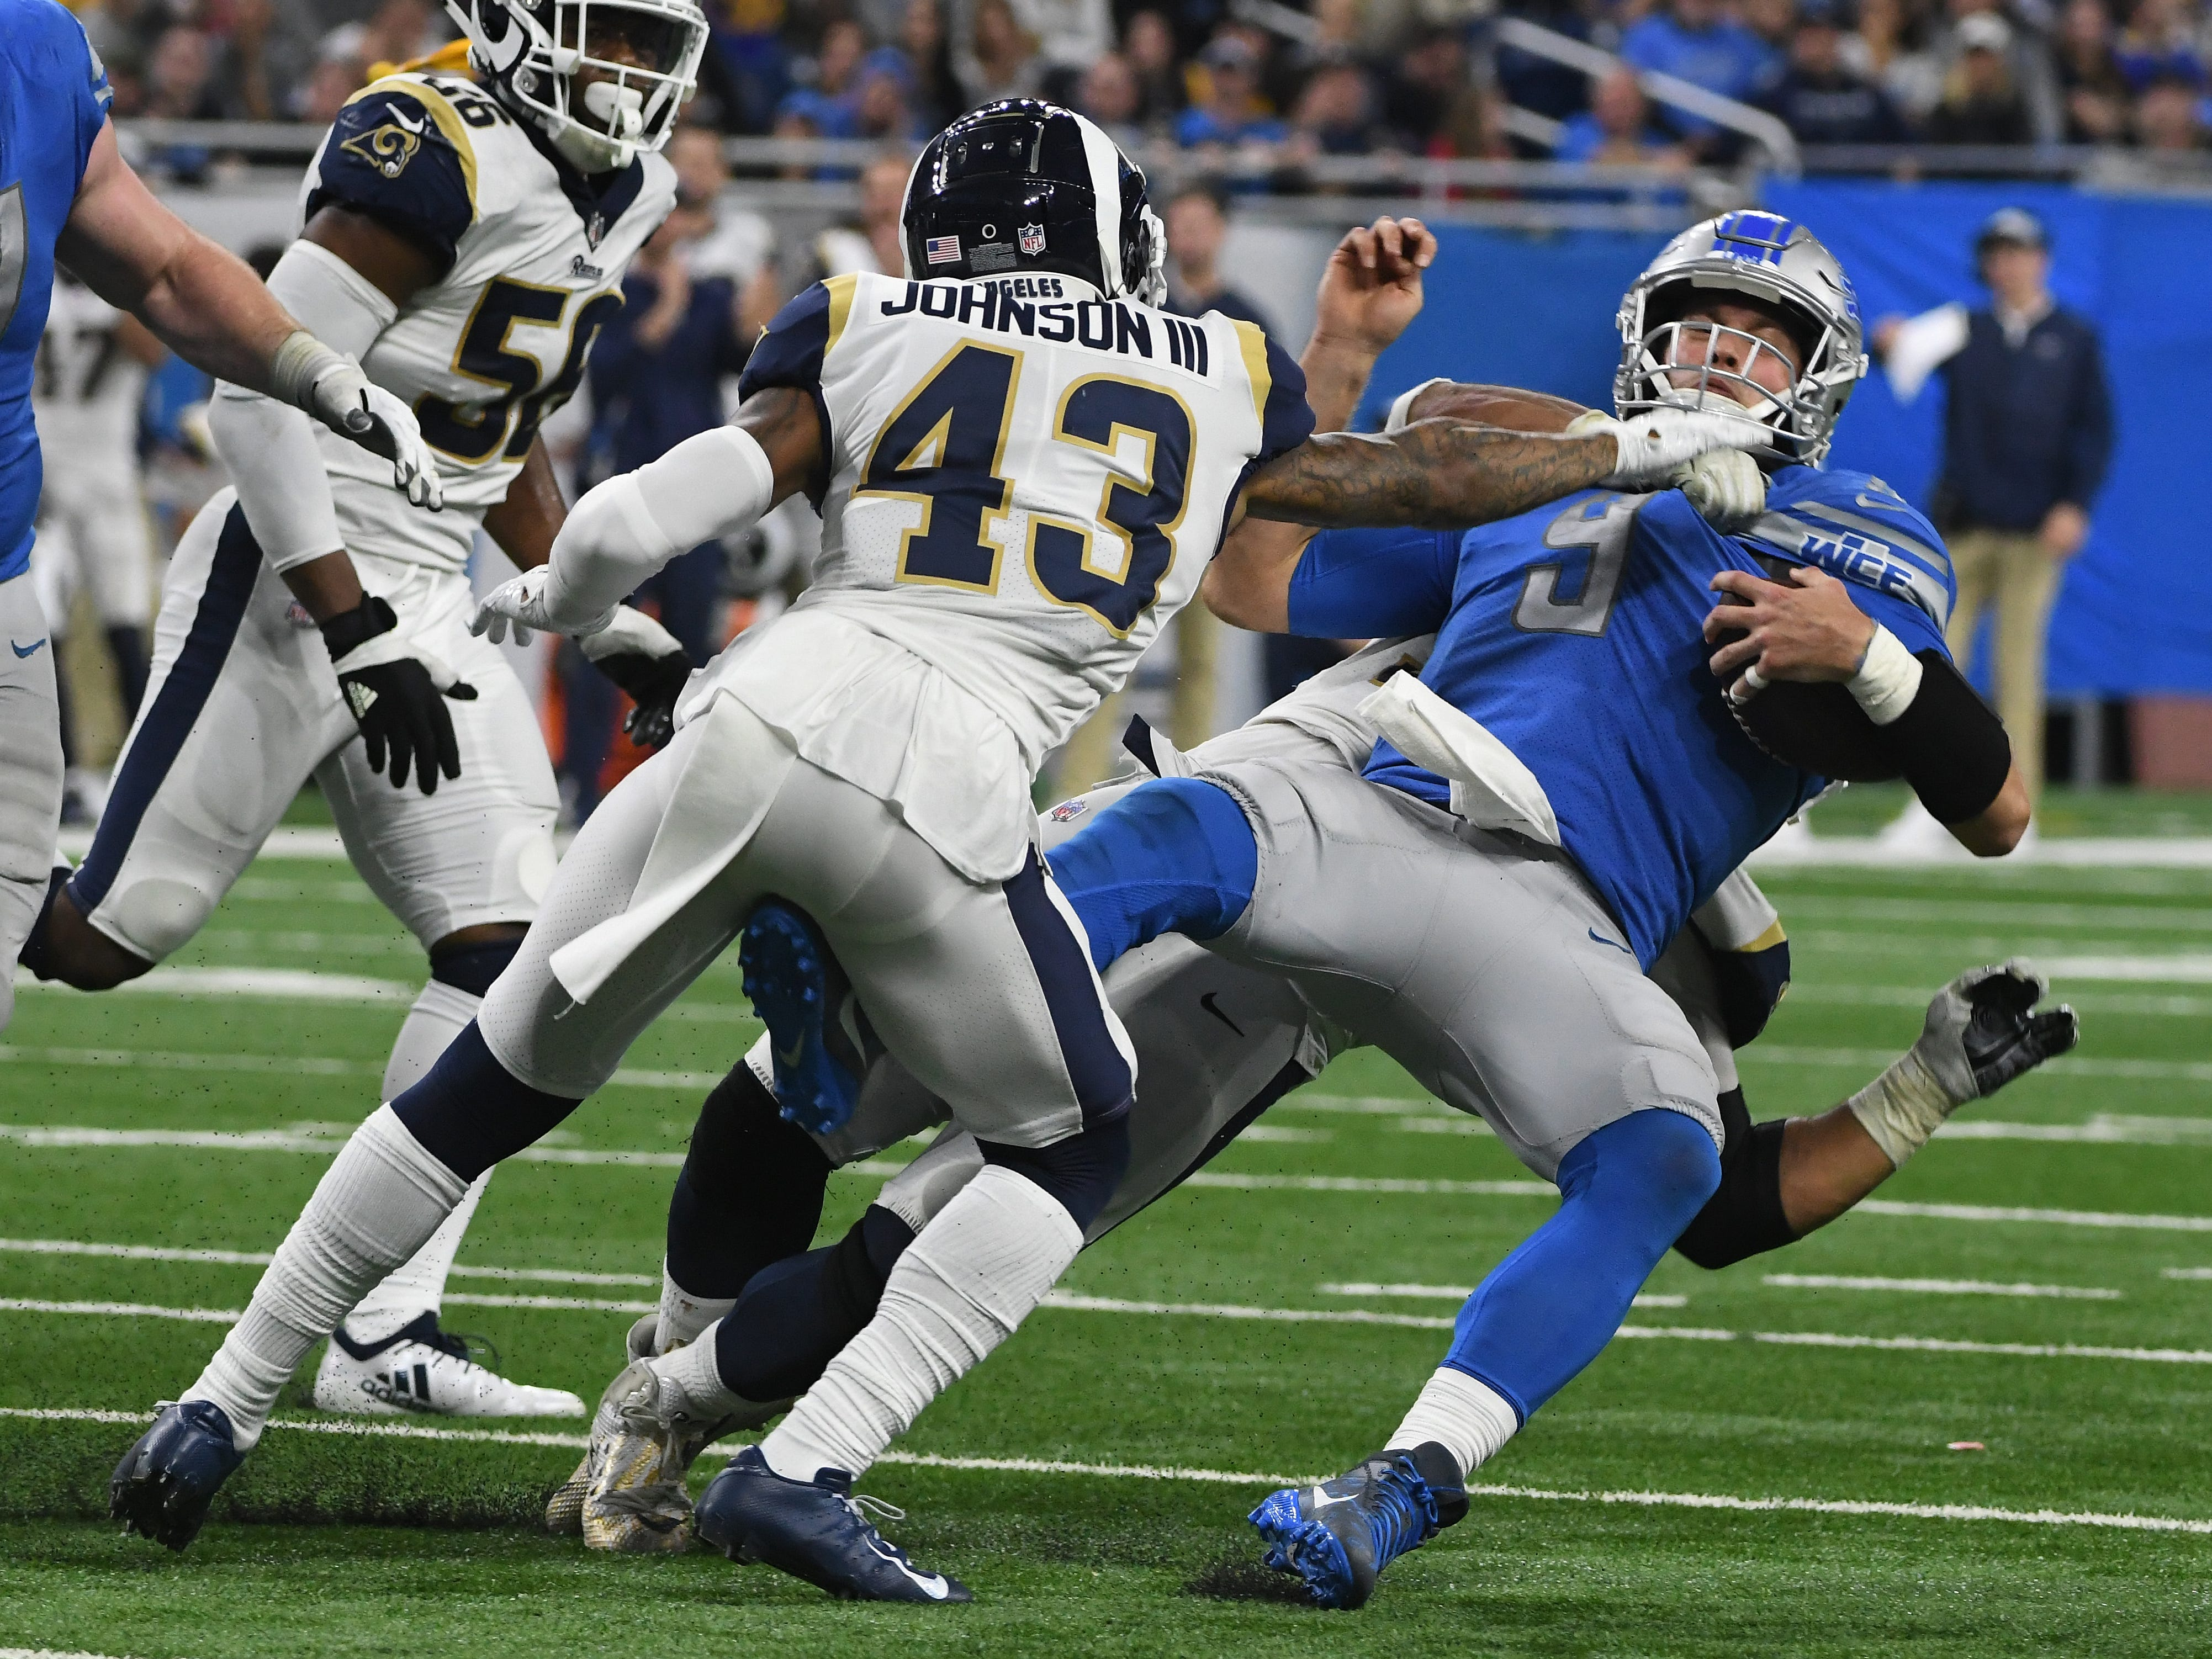 Lions' Matthew Stafford is sacked by Rams' Ethan Westbrooks and John Johnson III, but off-setting penalties, forced both teams to replay the down during a 30-16 loss at Ford Field in Detroit, Michigan on December 2, 2018.